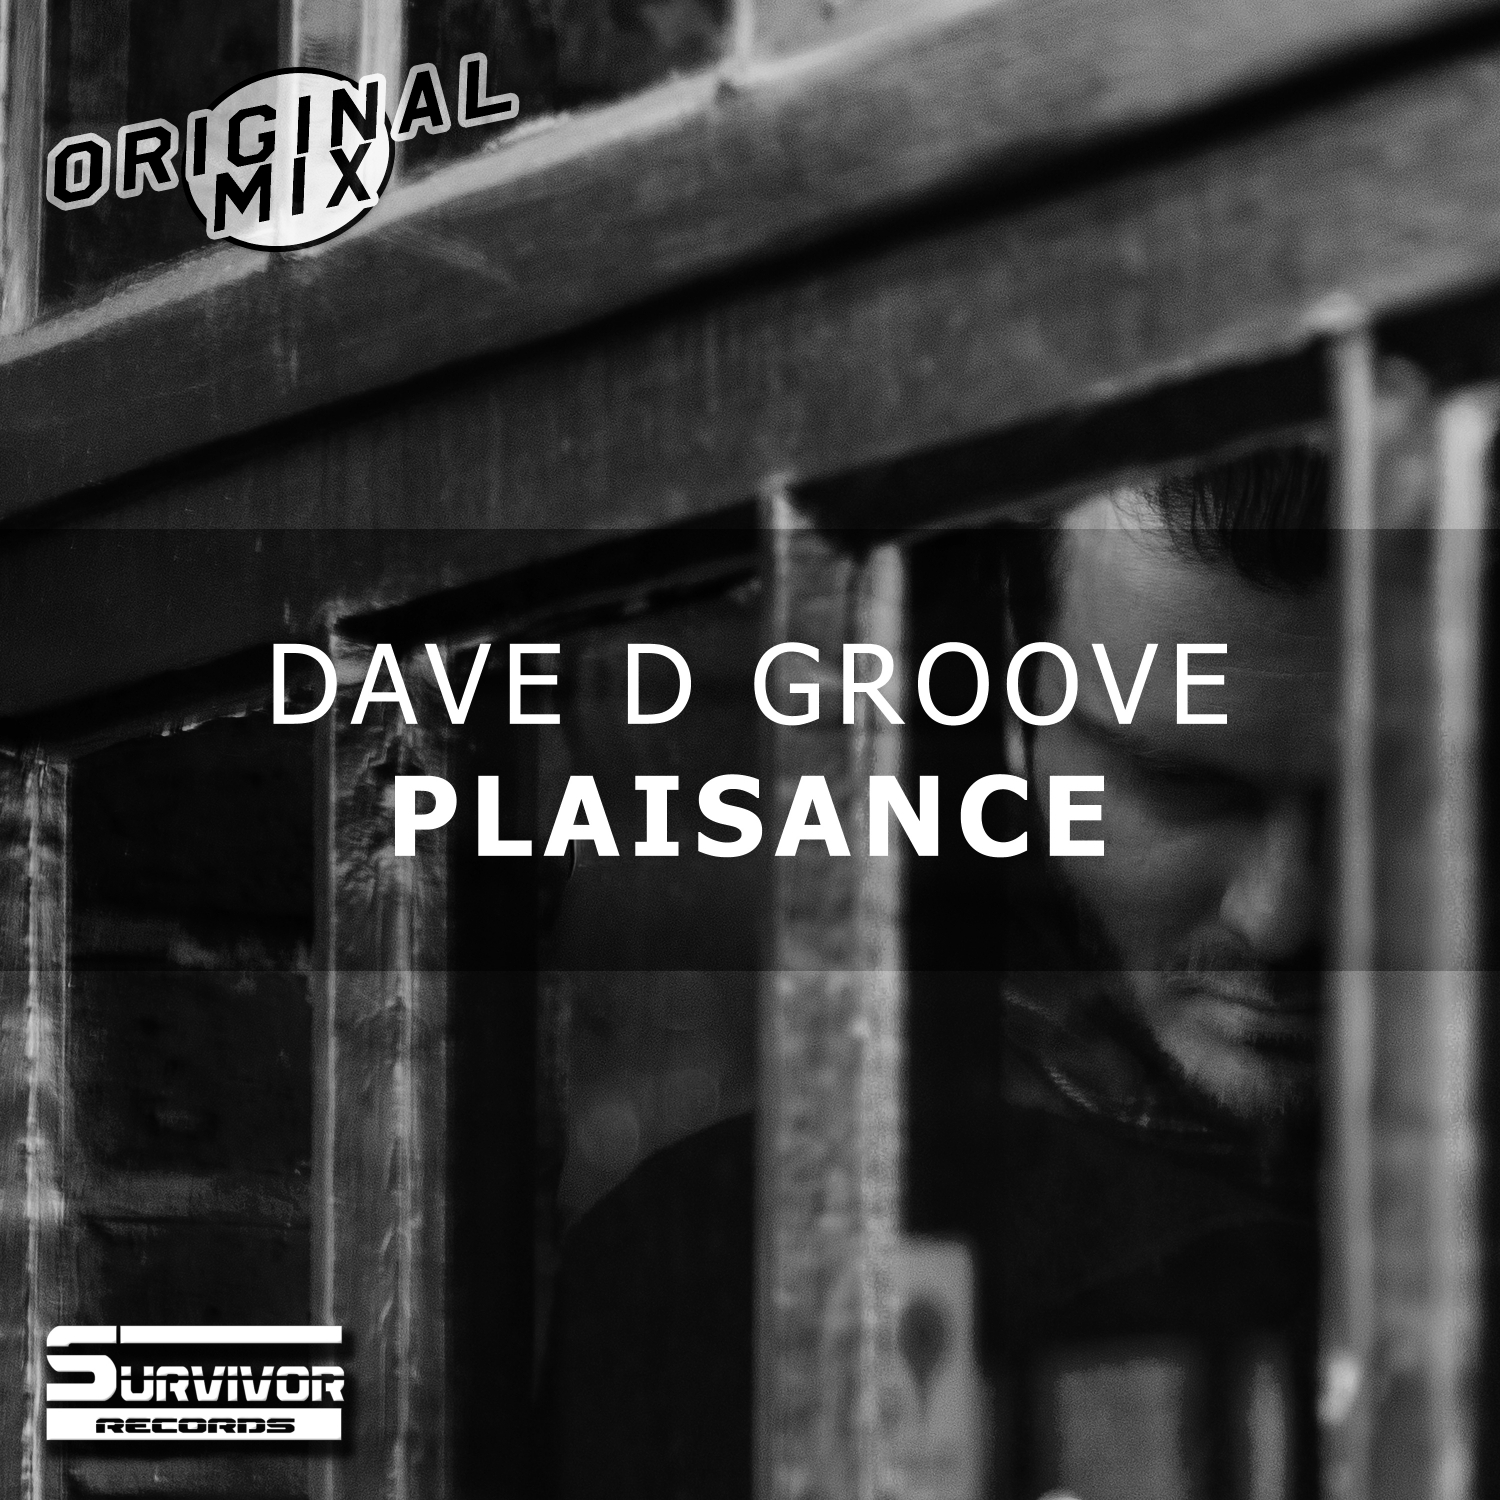 Dave D Groove - Plaisance (Original Mix)